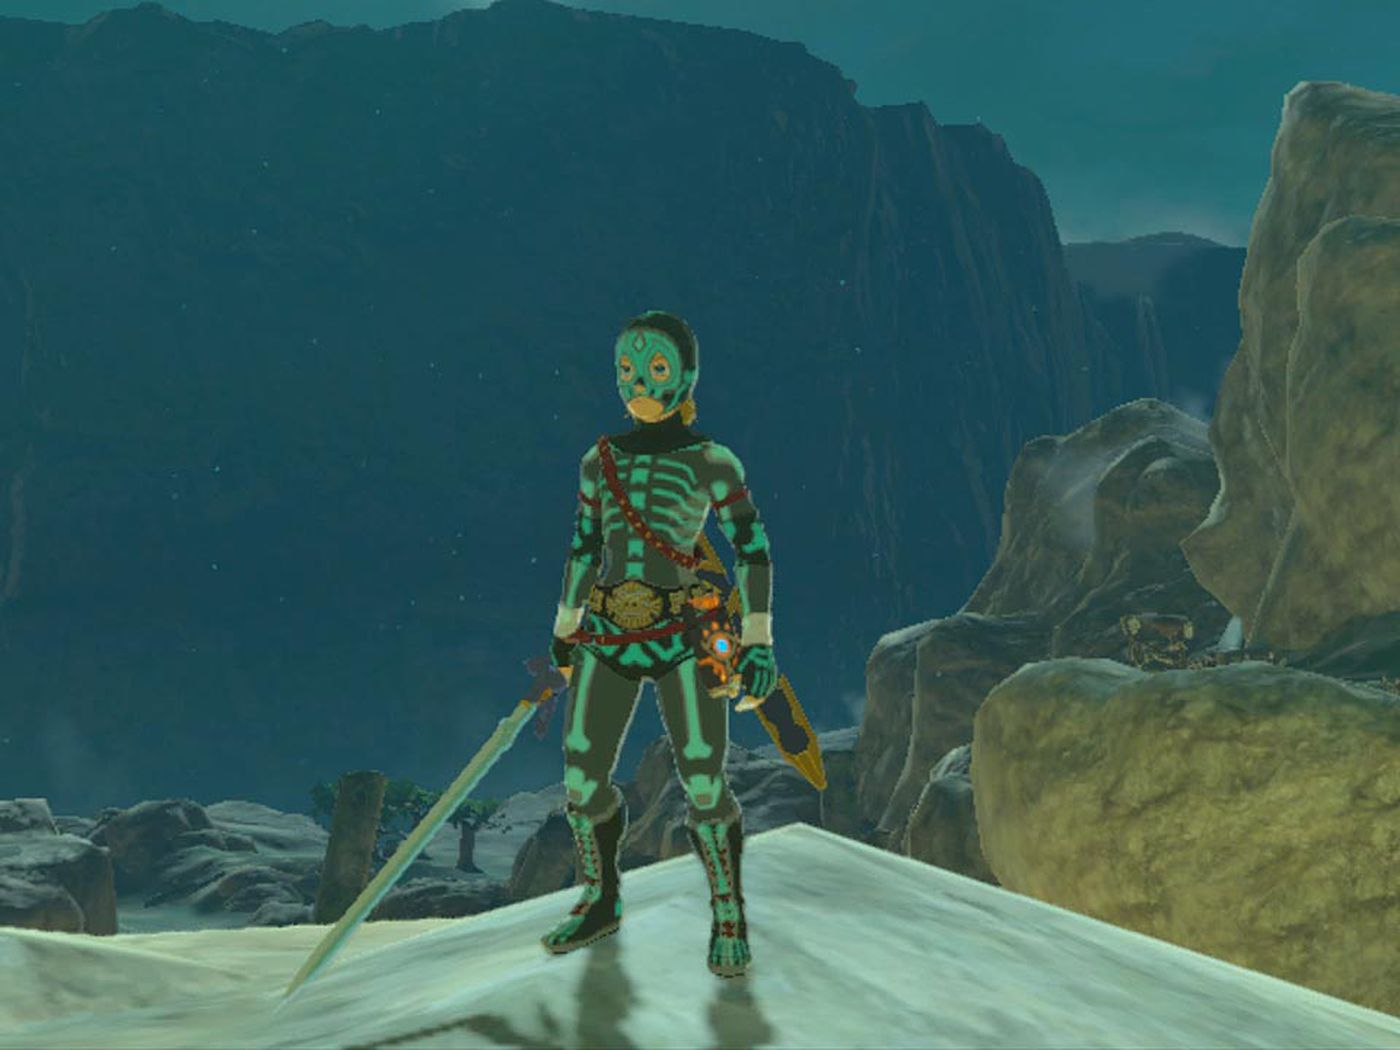 Breath Of The Wild Dark Link >> Zelda Breath Of The Wild Guide How To Find And Upgrade The Radiant